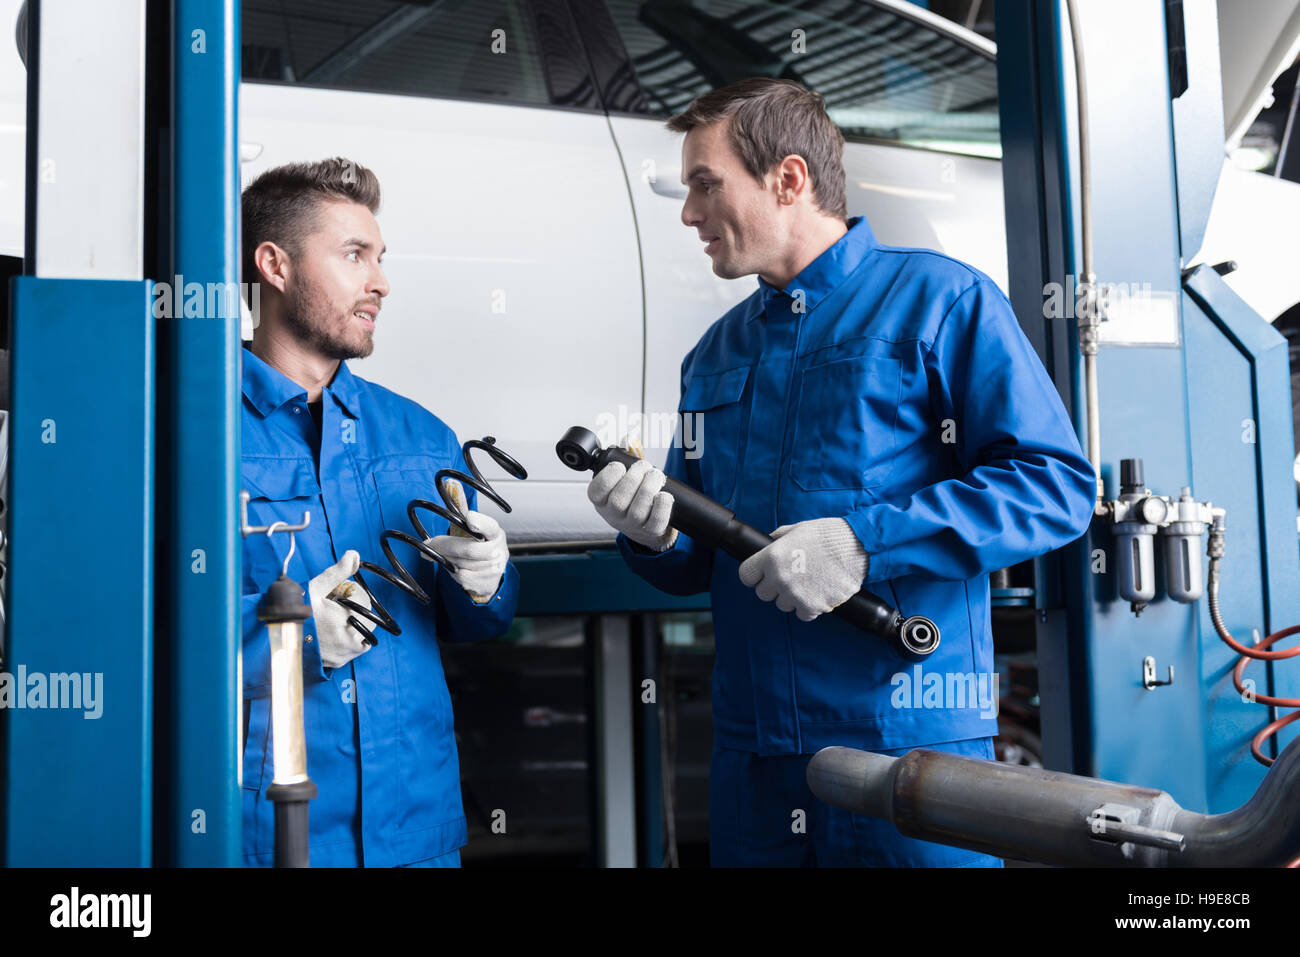 Professional mechanics reparing car - Stock Image